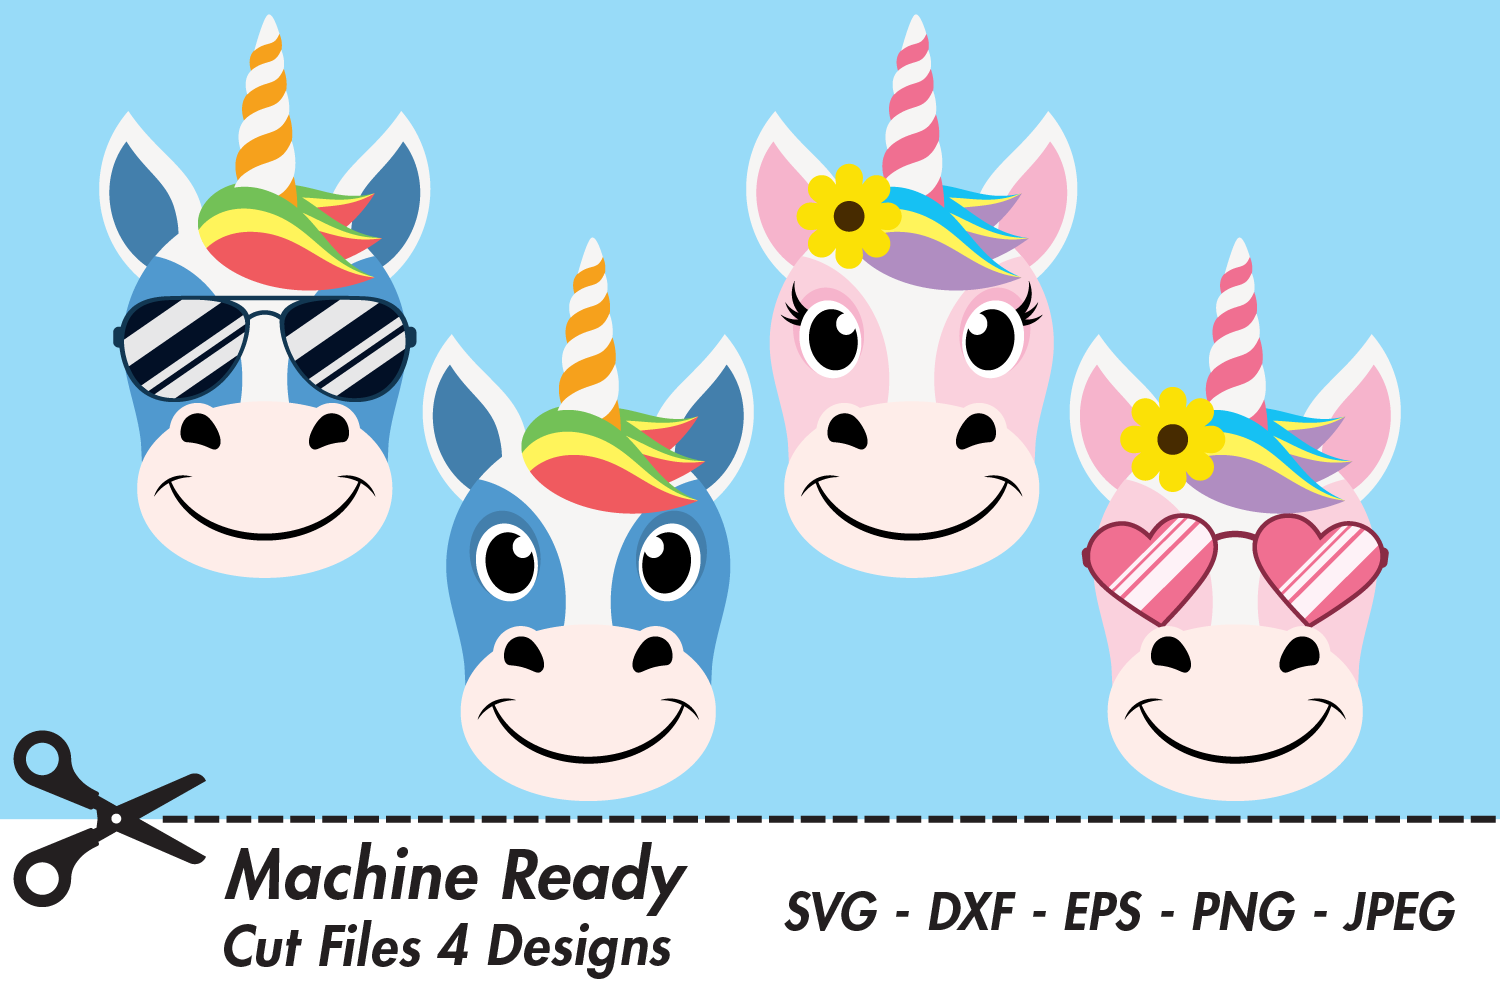 Download Free Tu9h Ybmxc8whm for Cricut Explore, Silhouette and other cutting machines.